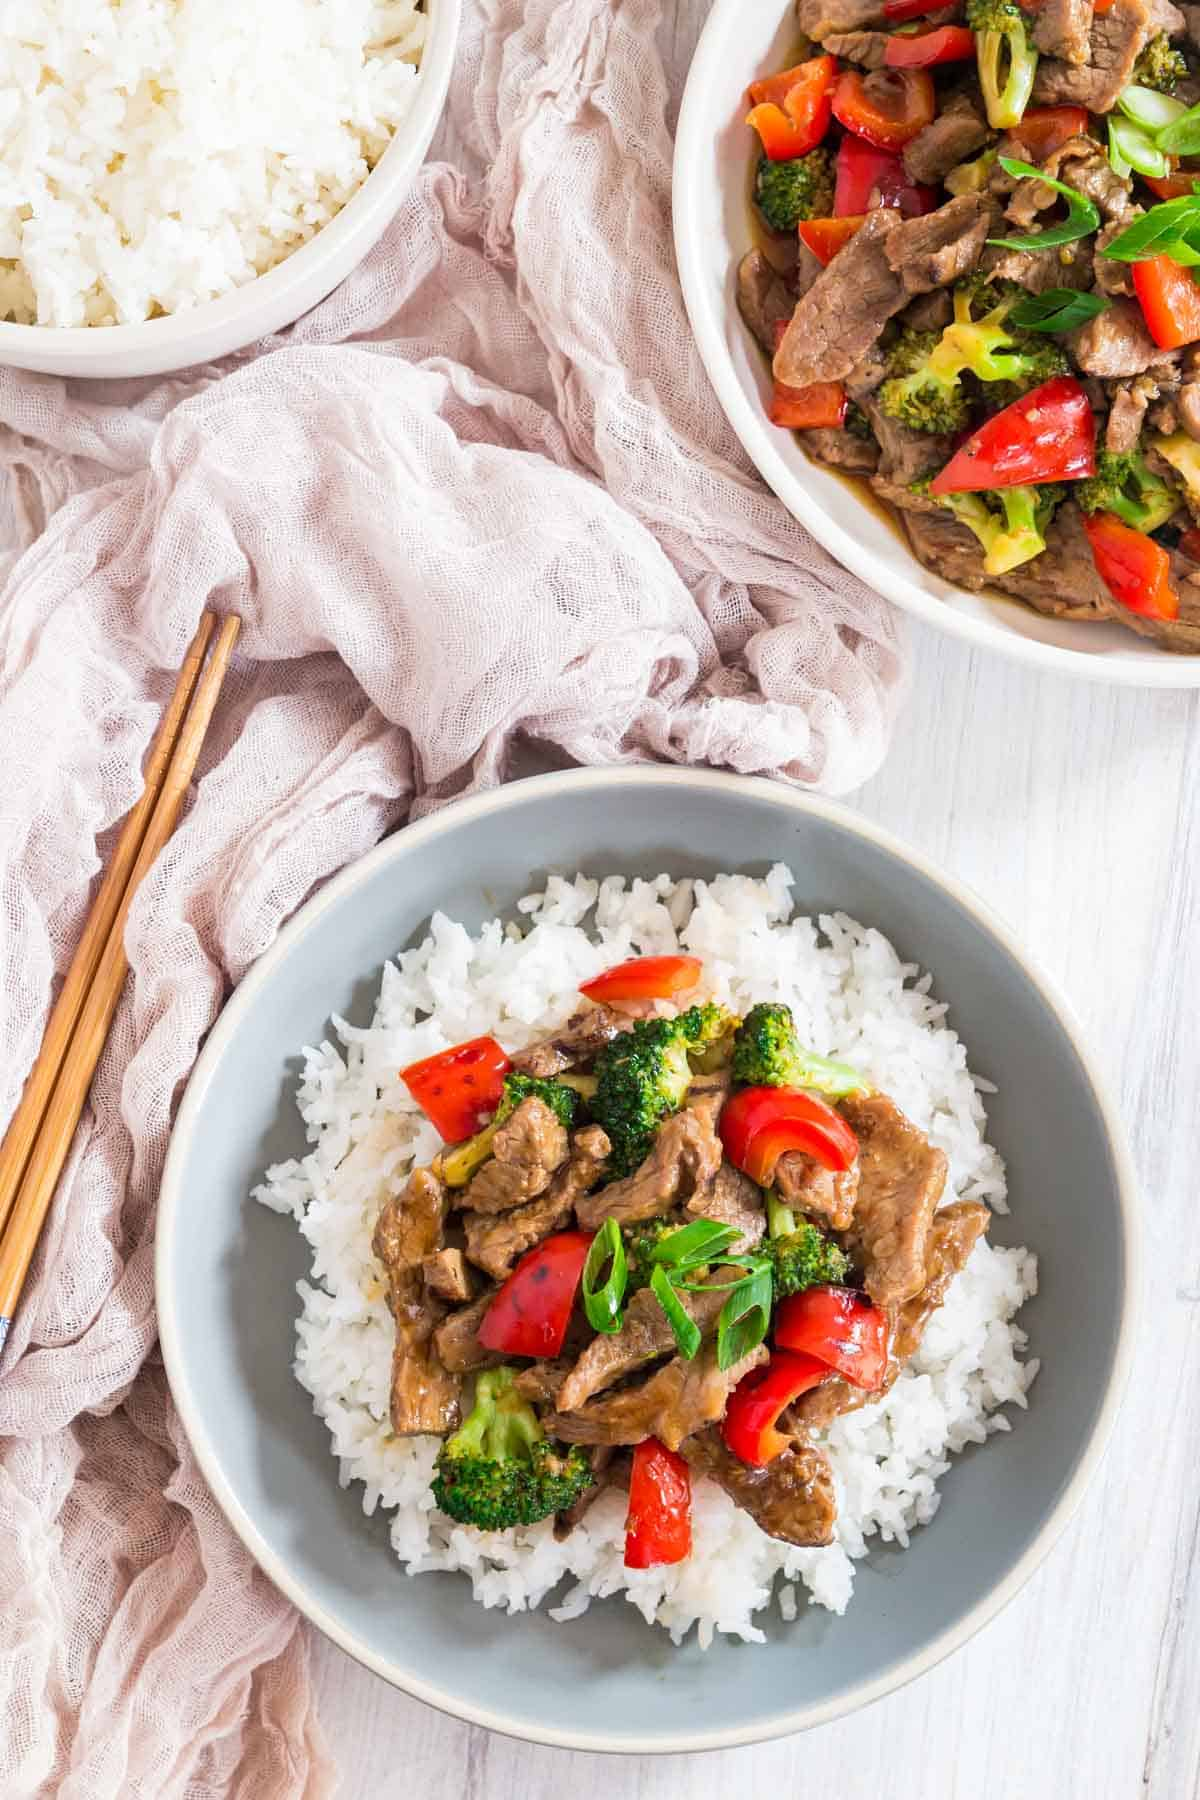 hunan beef with rice in a bowl with chopsticks alongside and separate bowls of the stir fry and white rice